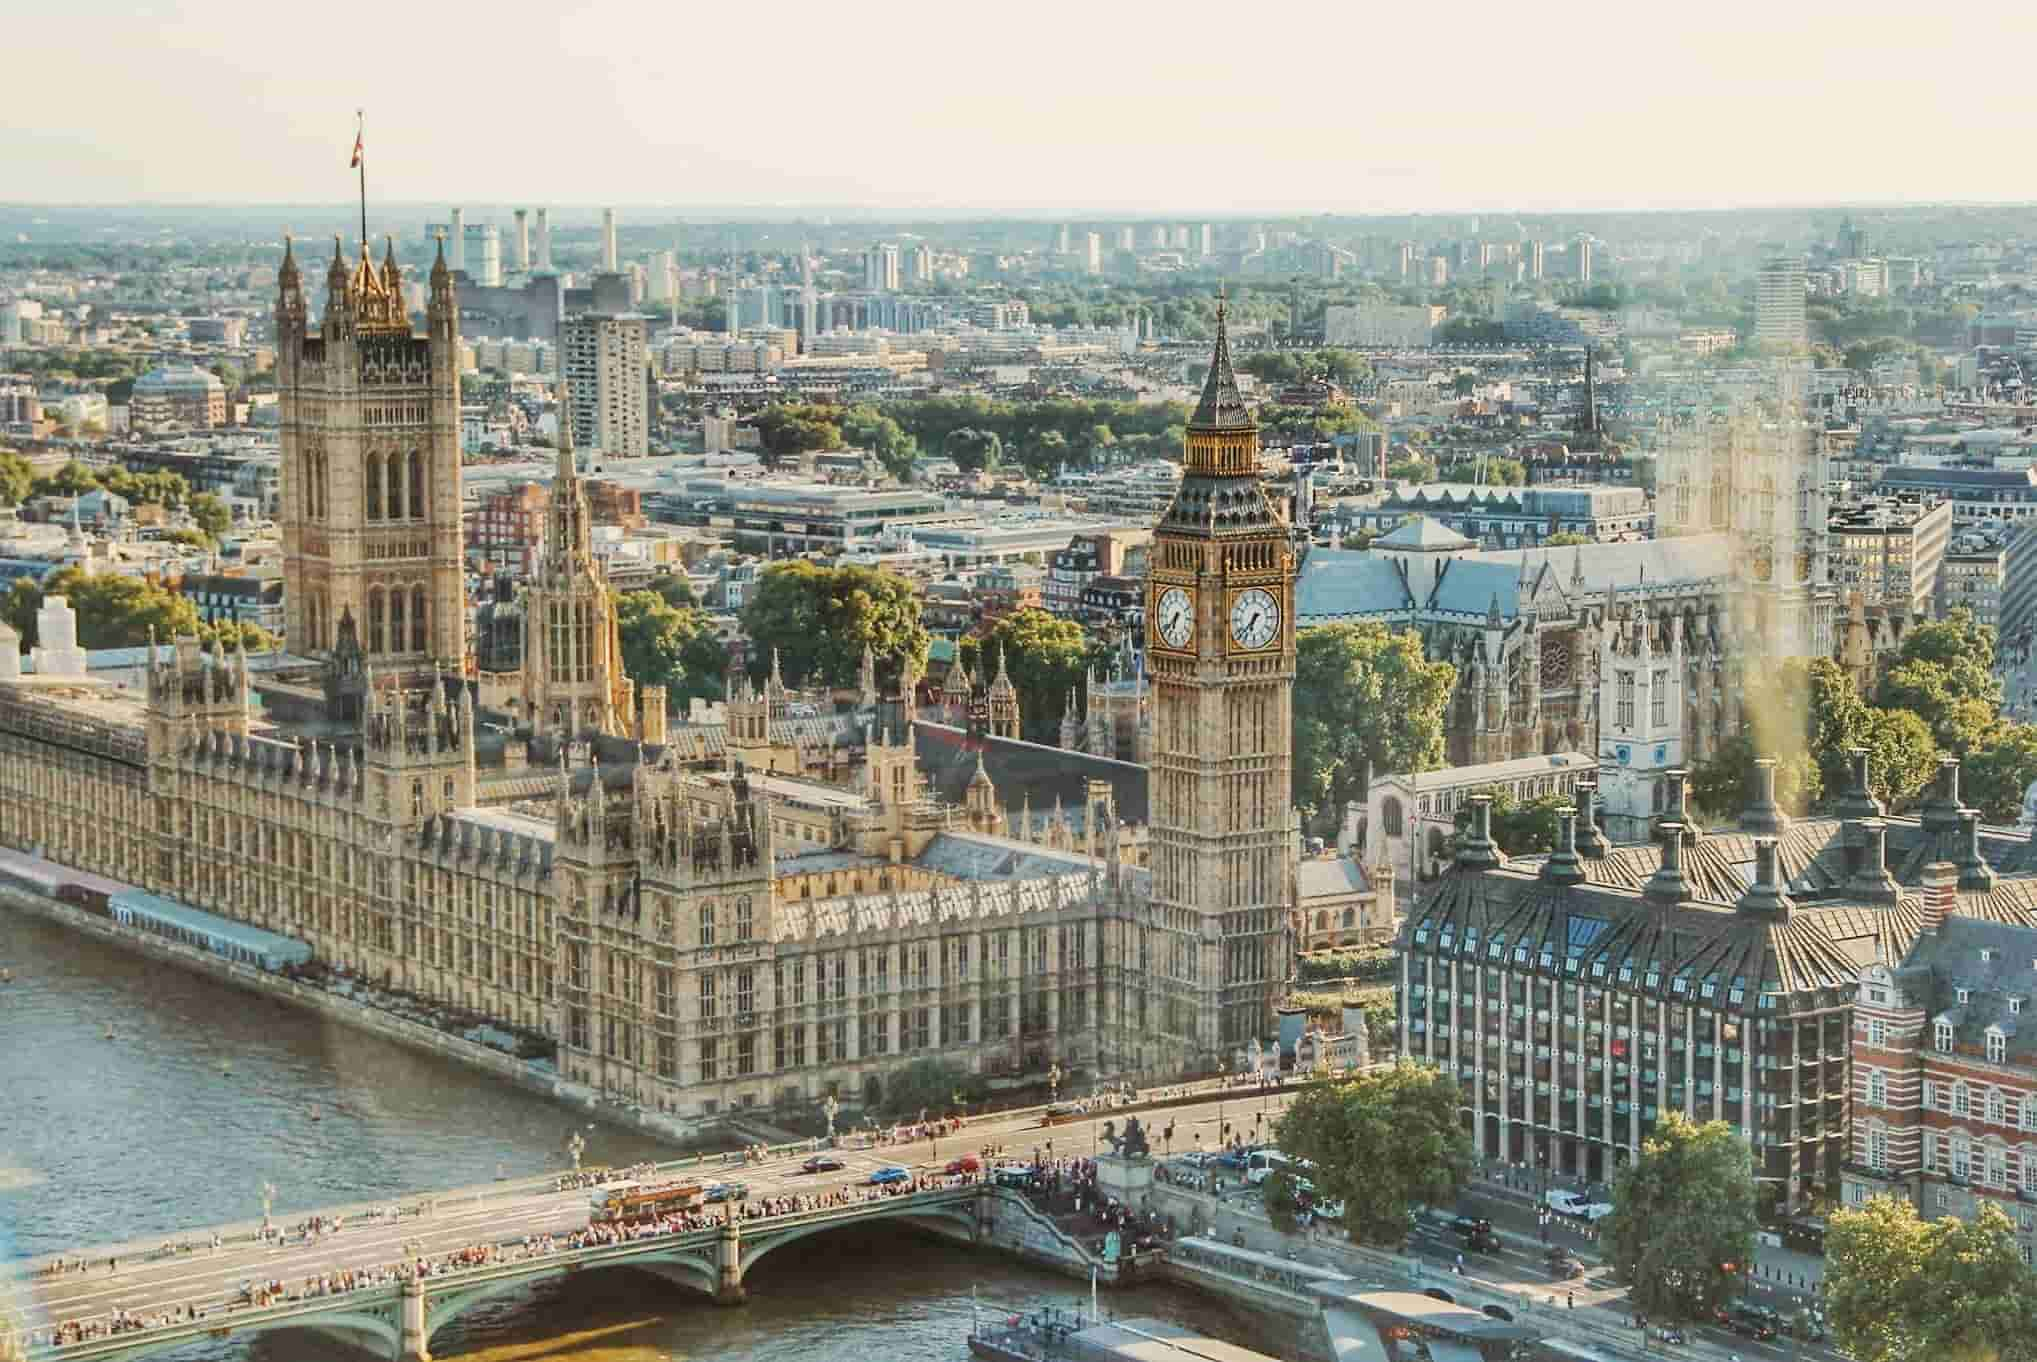 BUDGET REPORT FOR 2021 RELEASED BY THE UK GOVERNMENT WITH AN AIM TO ATTRACT MORE FOREIGN TALENT